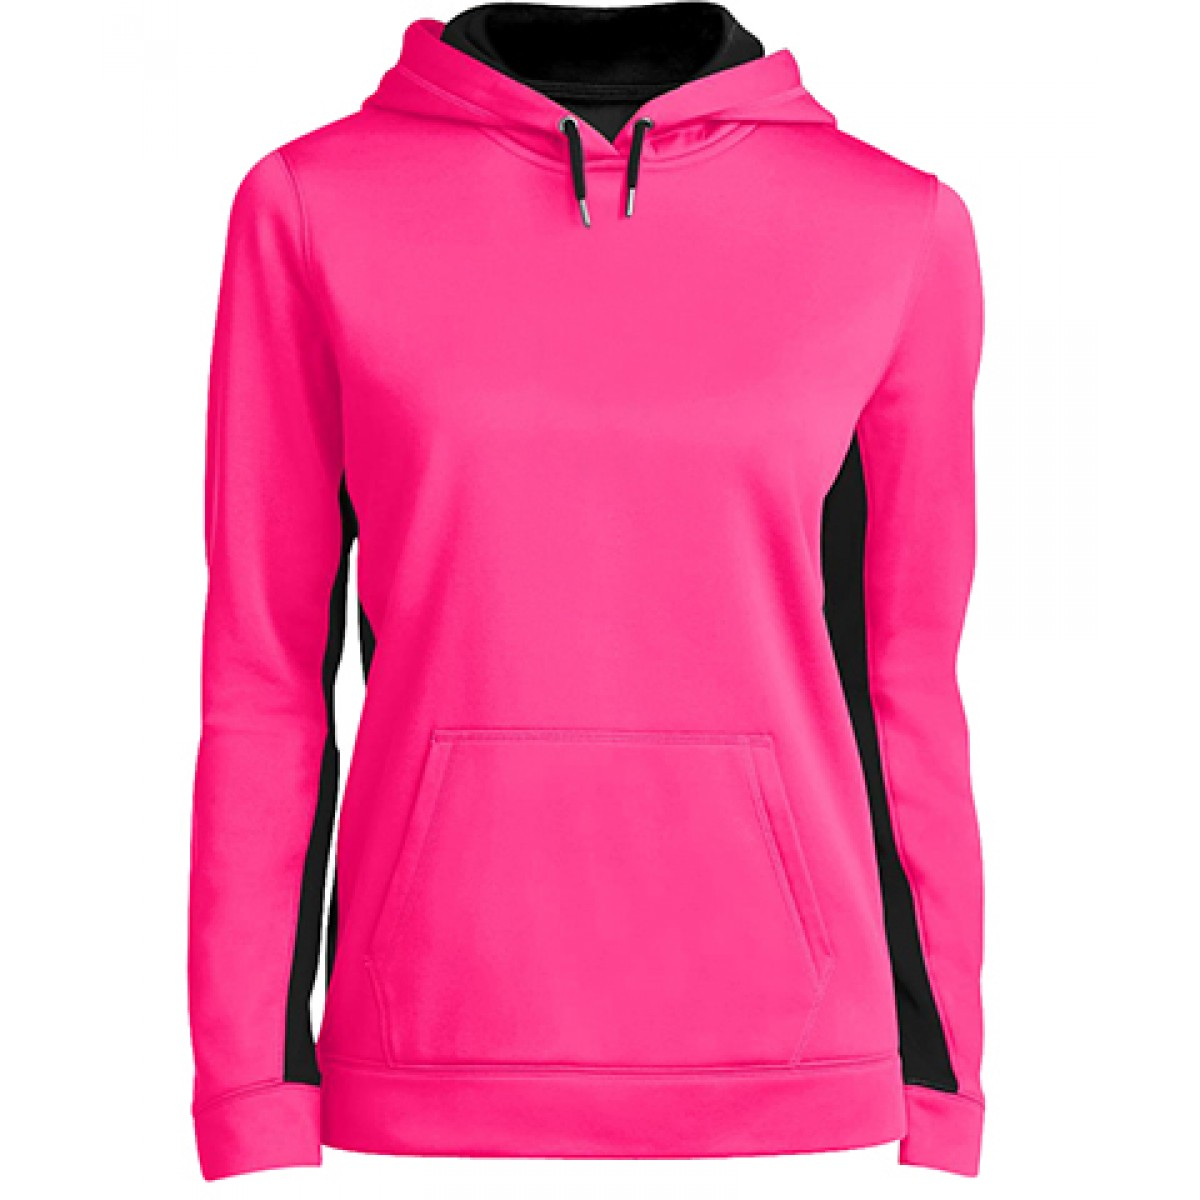 Ladies Colorblock Hooded Pullover-Neon Pink Black-2XL